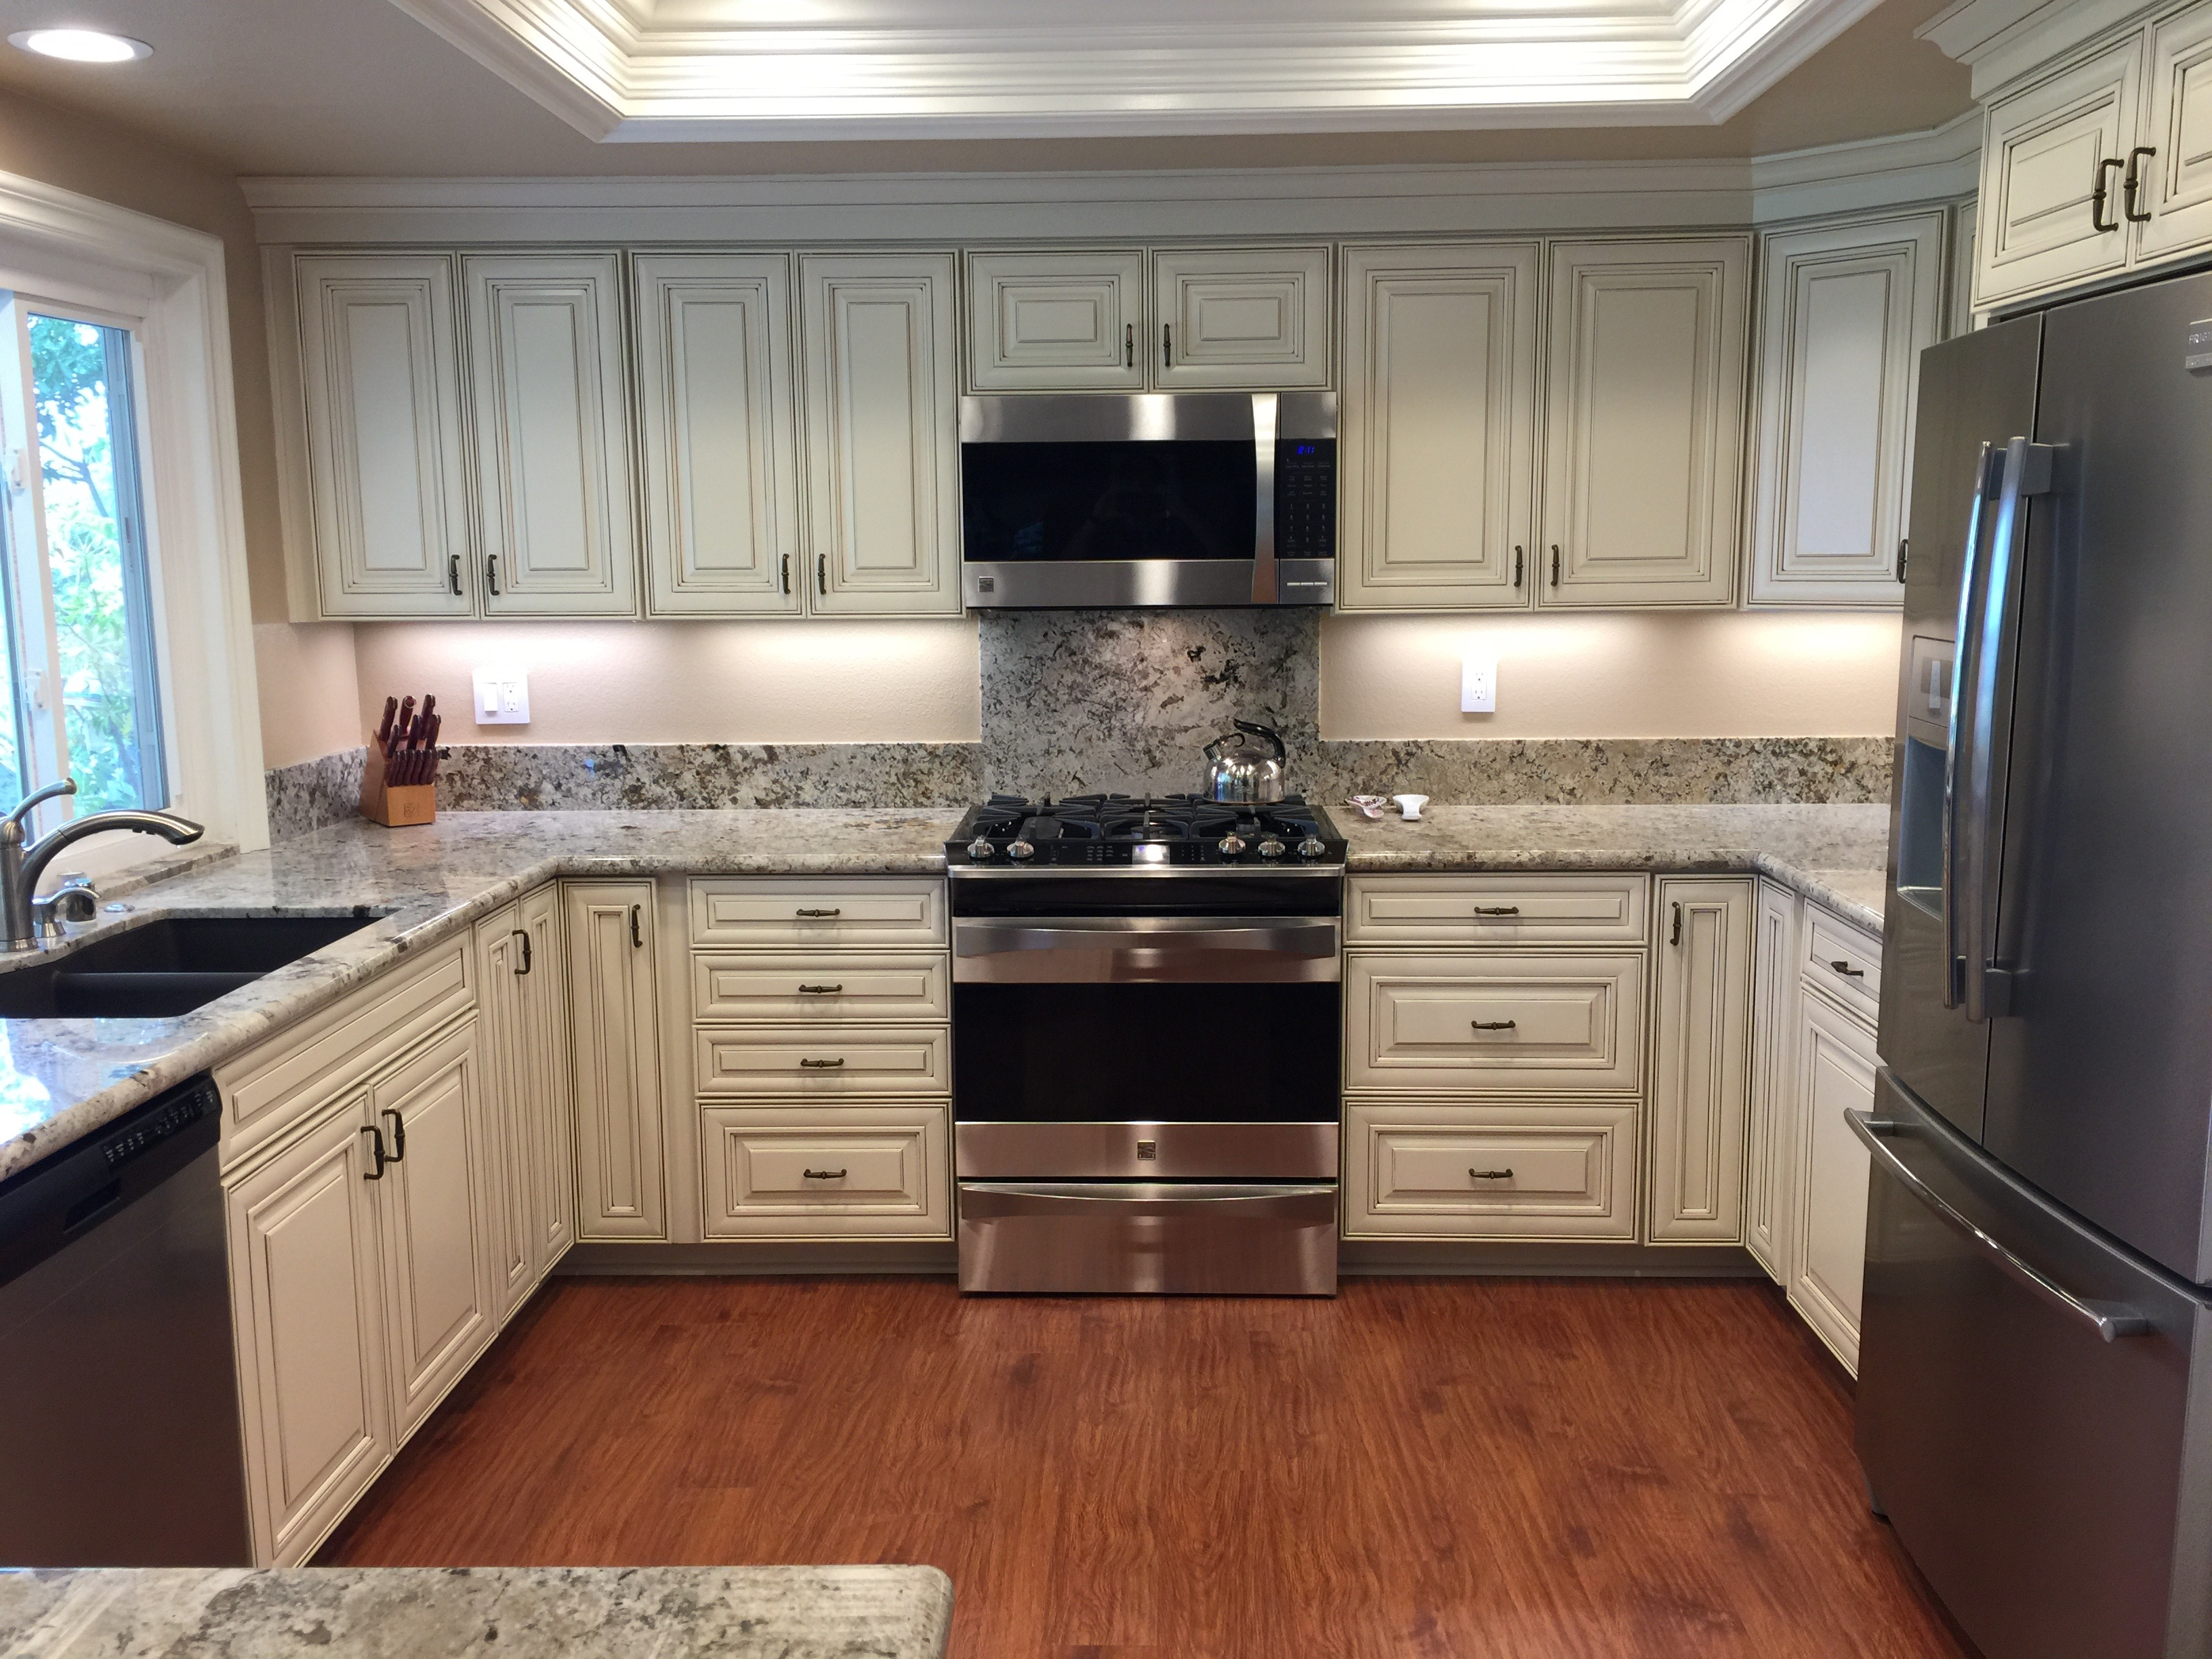 Take A Peek Inside Cabinets With An Orange County Kitchen Cabinet Contractor